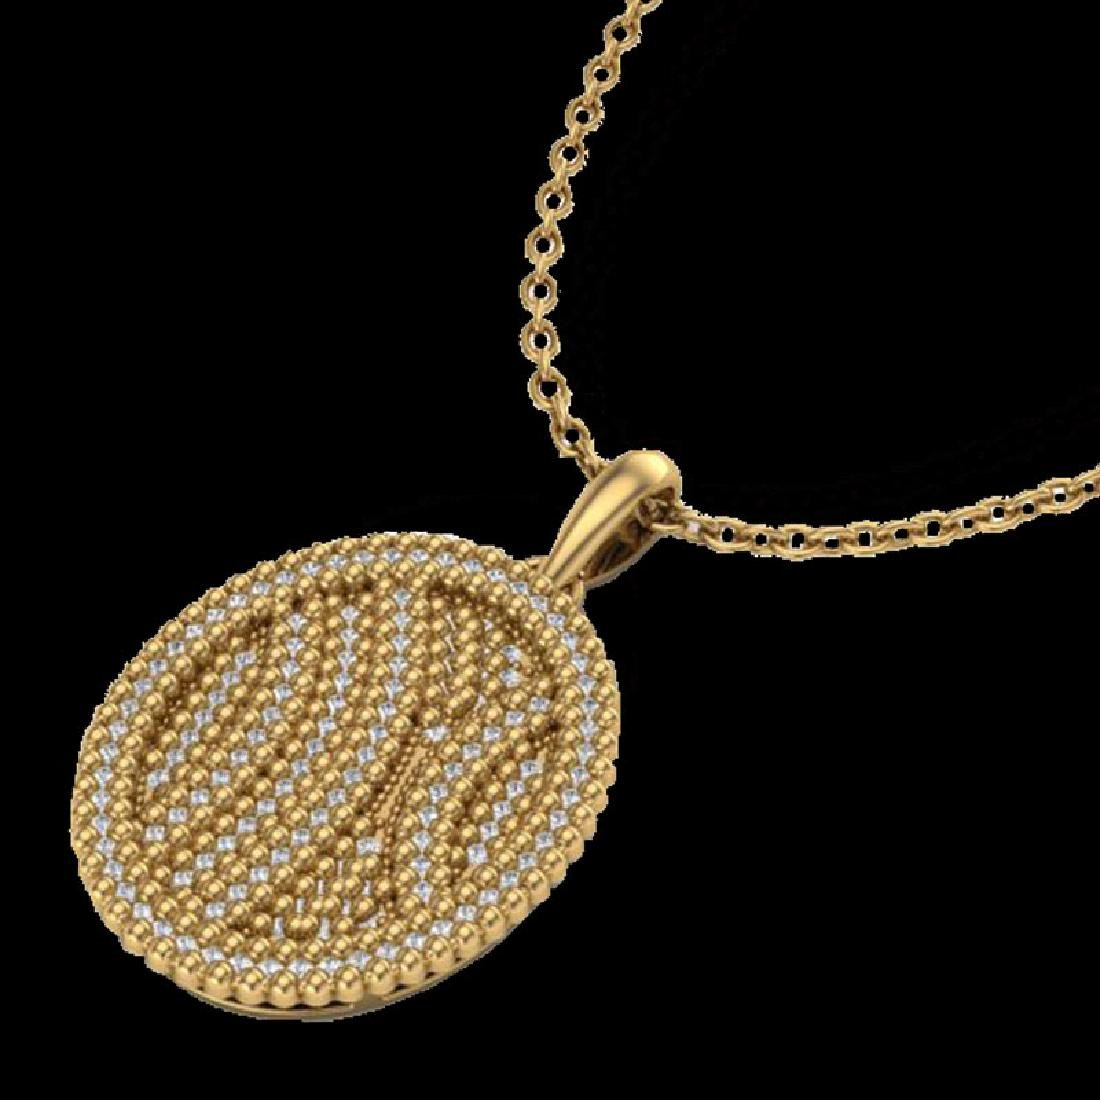 1 CTW Micro Pave VS/SI Diamond Necklace 14K Yellow Gold - 2